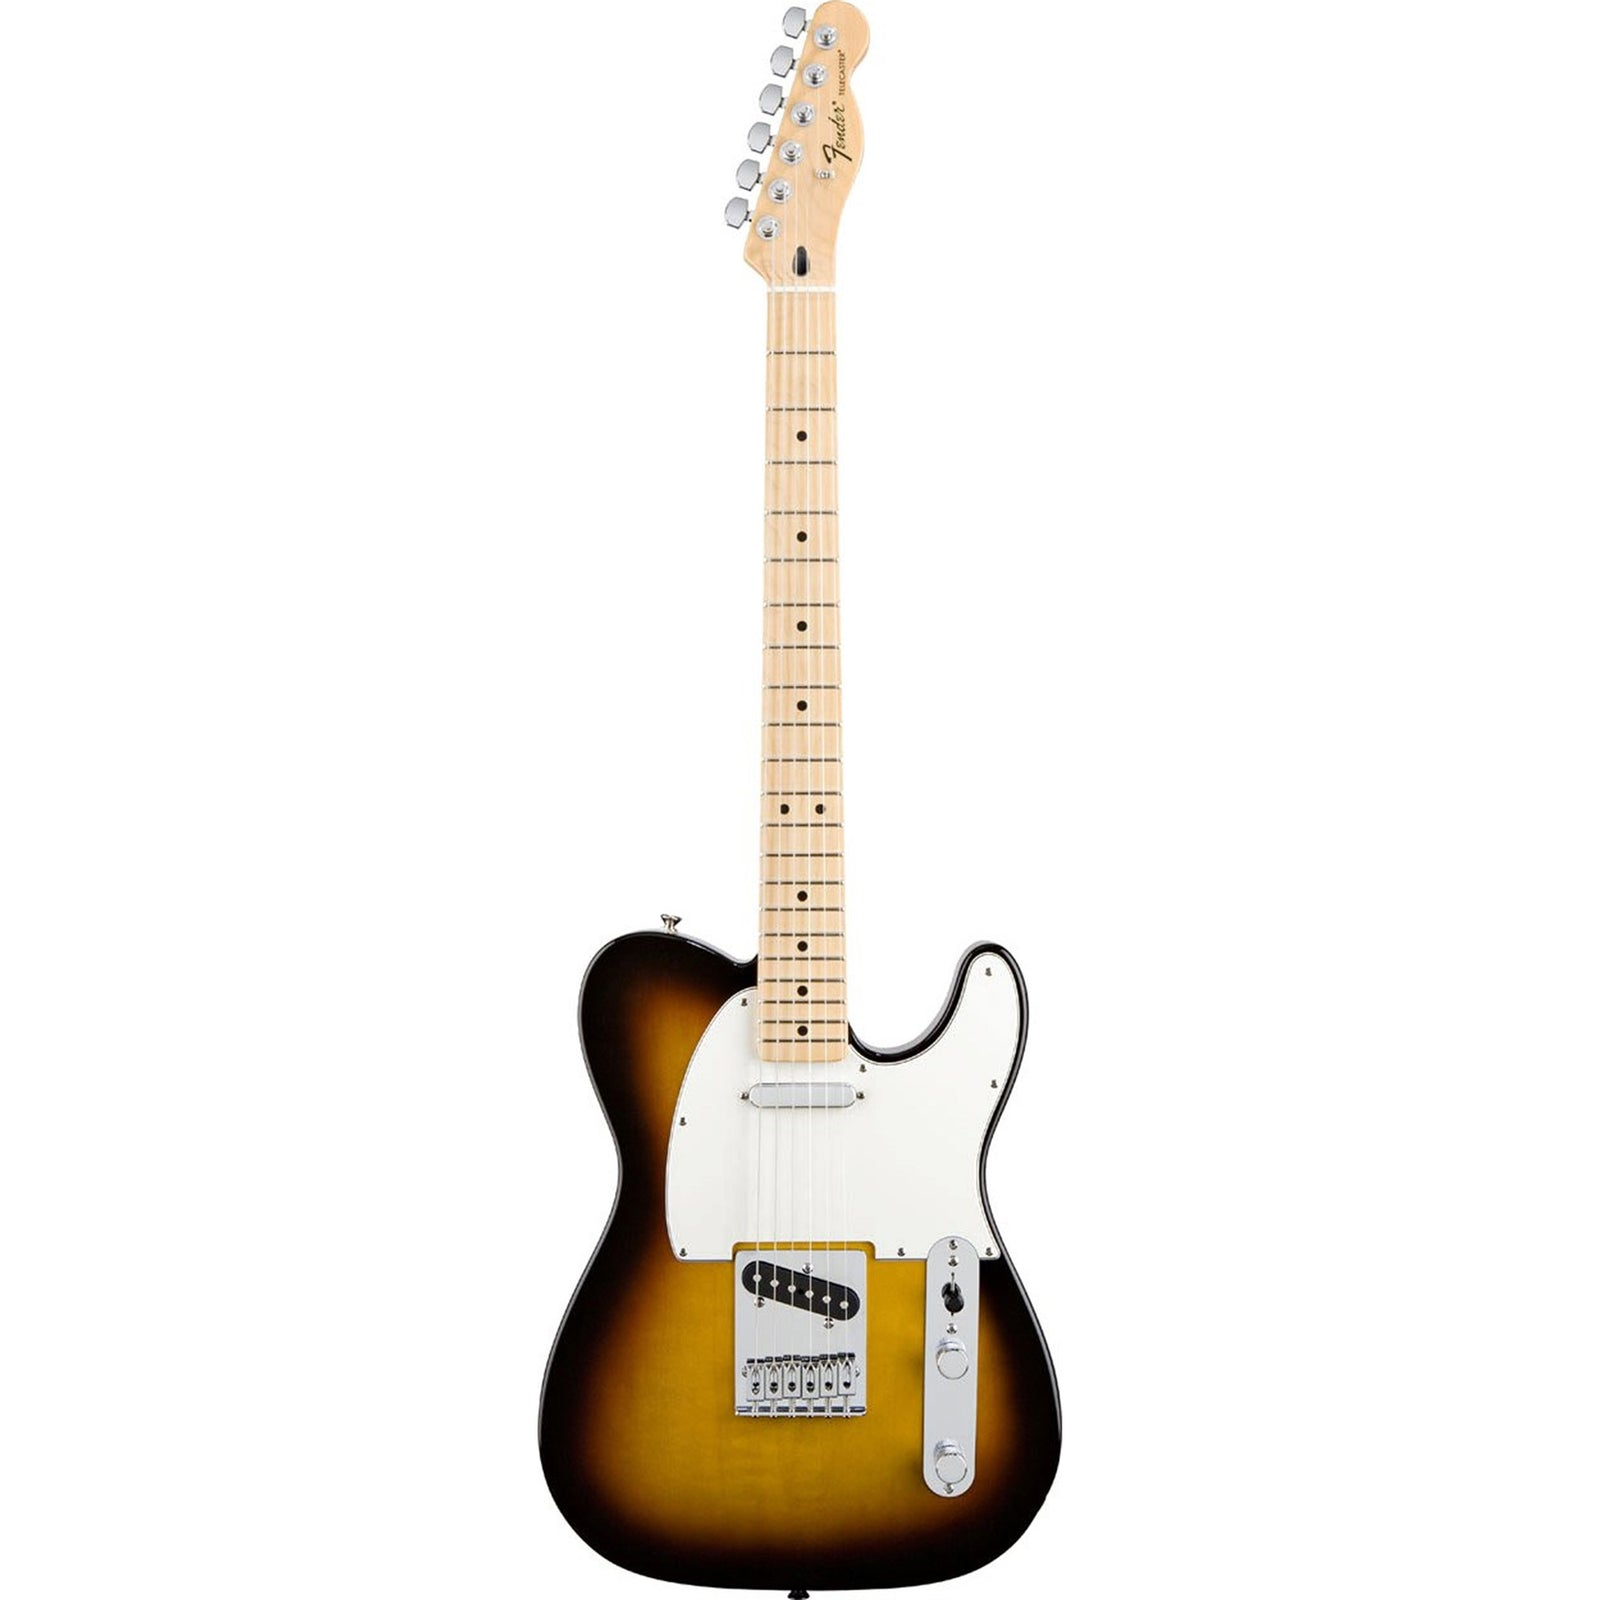 Fender Standard Telecaster - Maple Fingerboard - Brown Sunburst